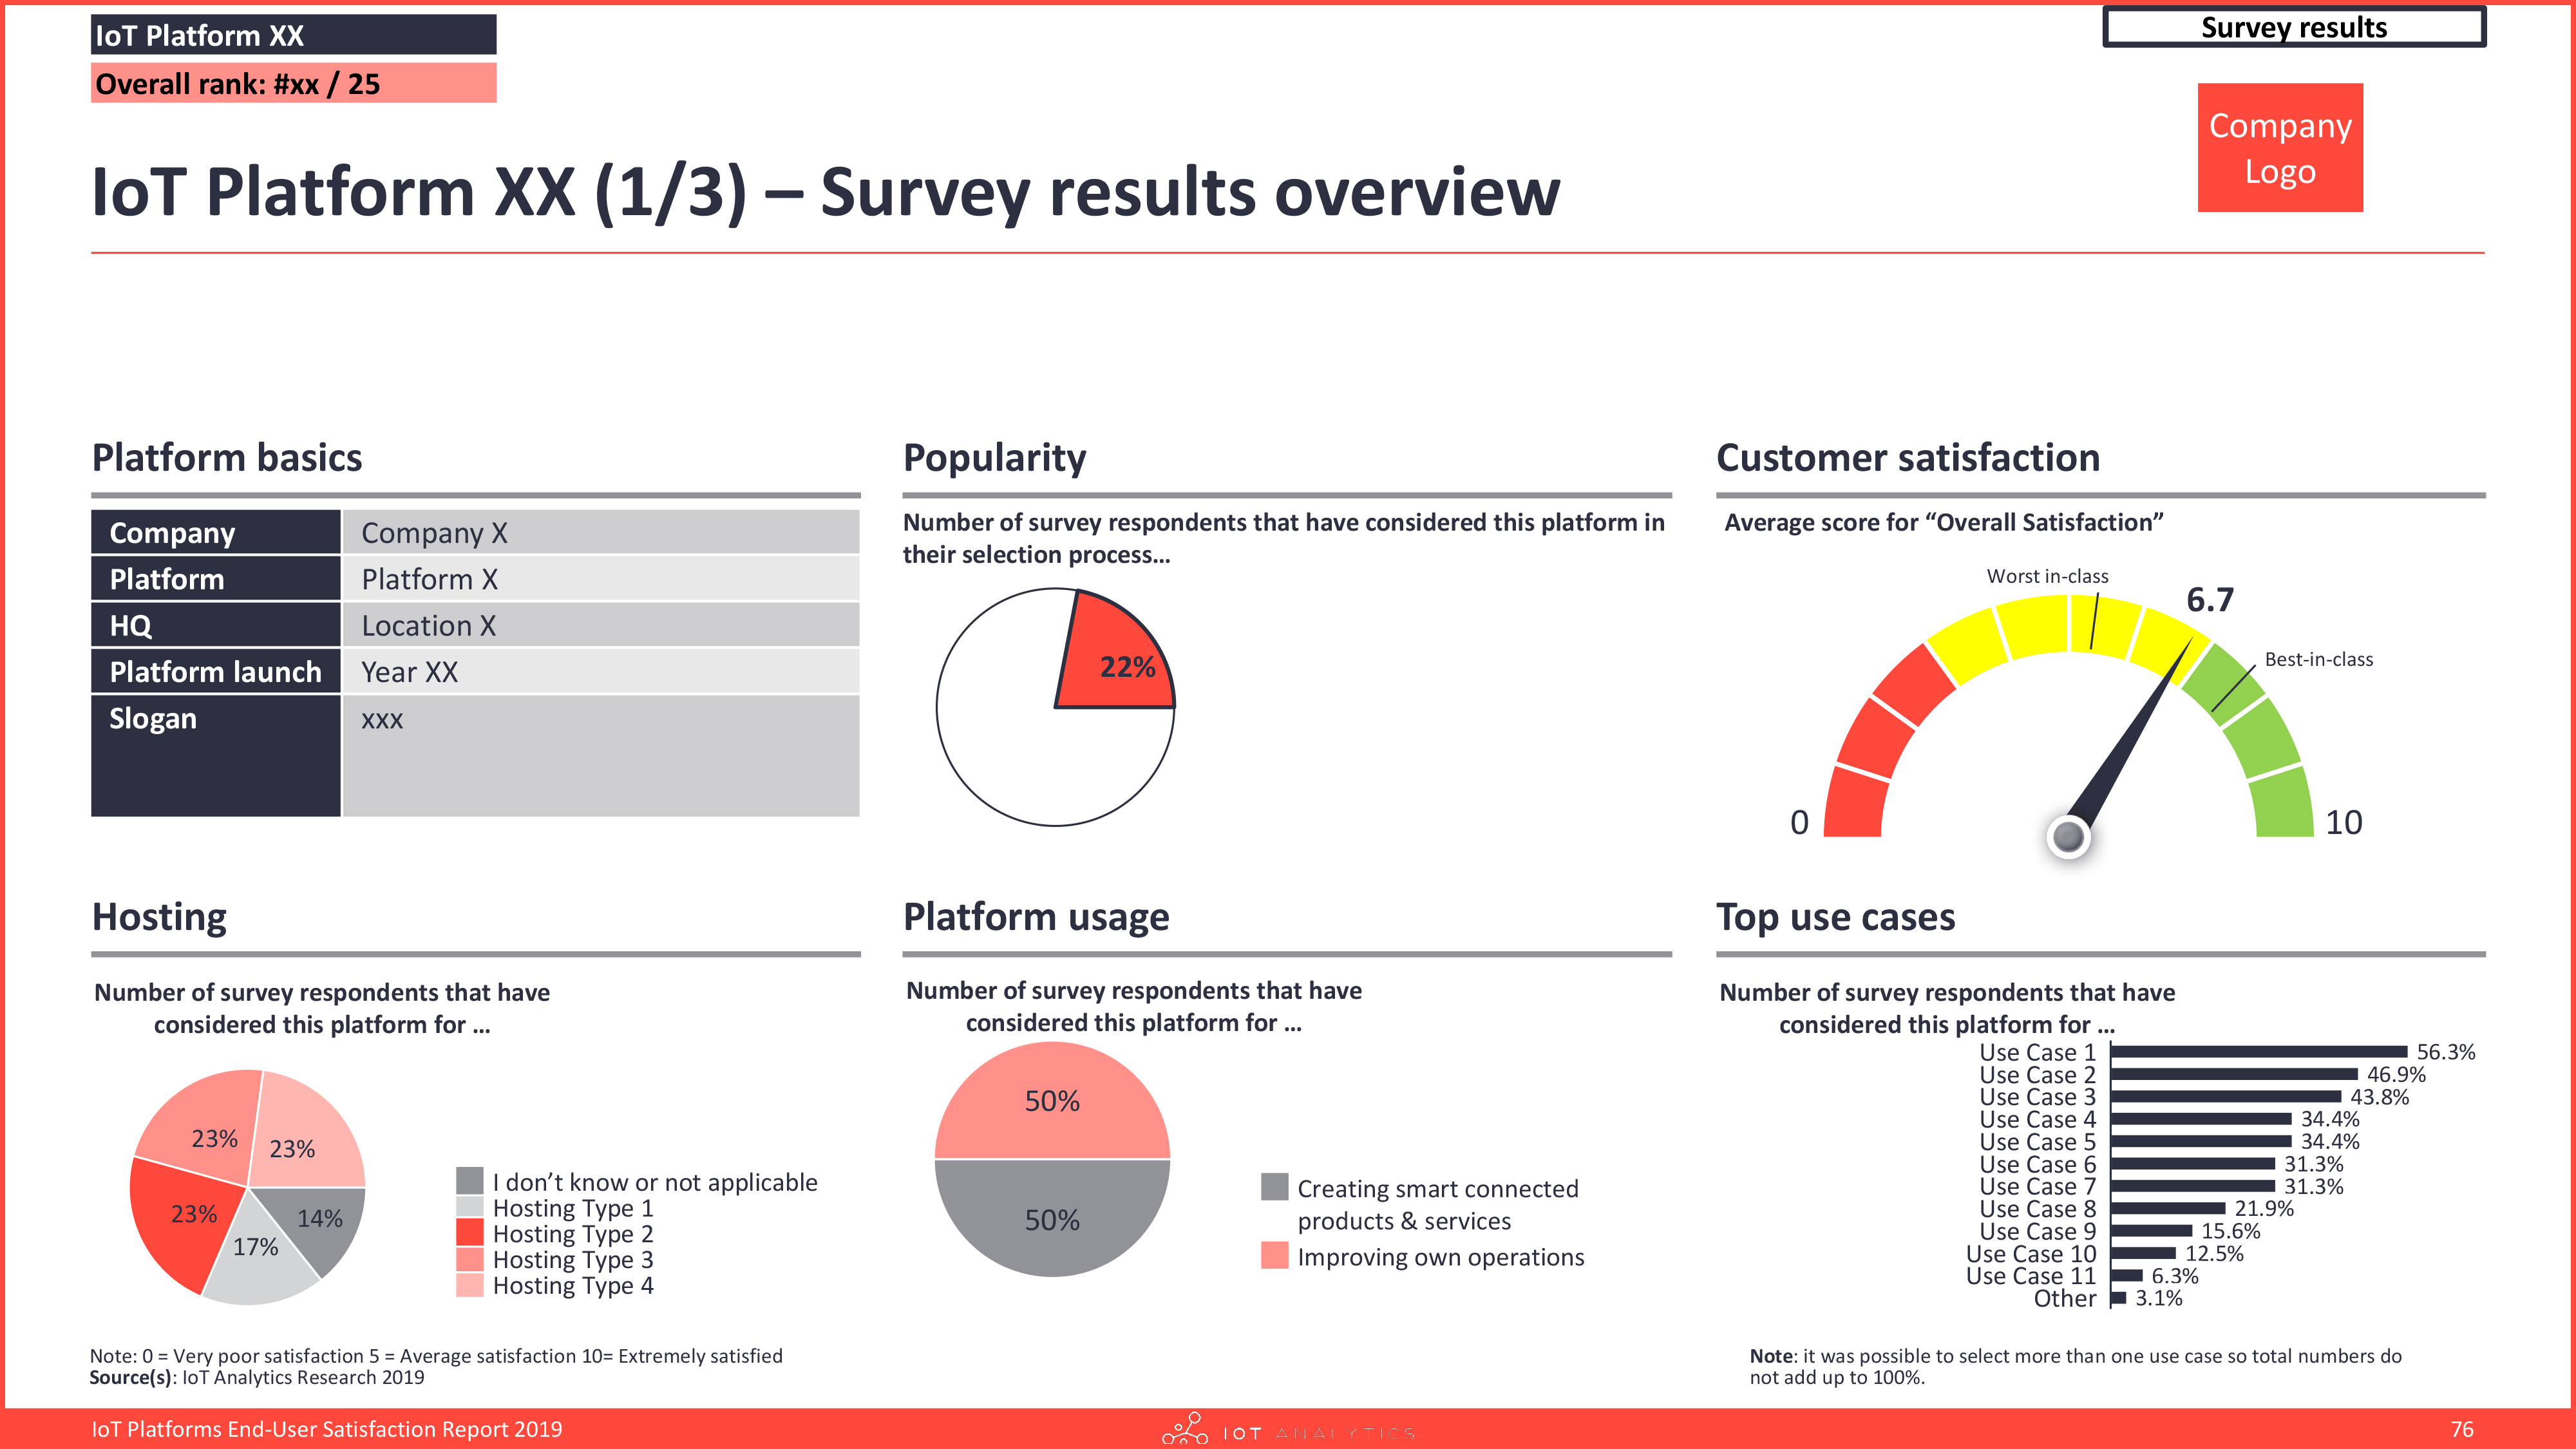 IoT Platforms End-User Satisfaction Report company profile results overview